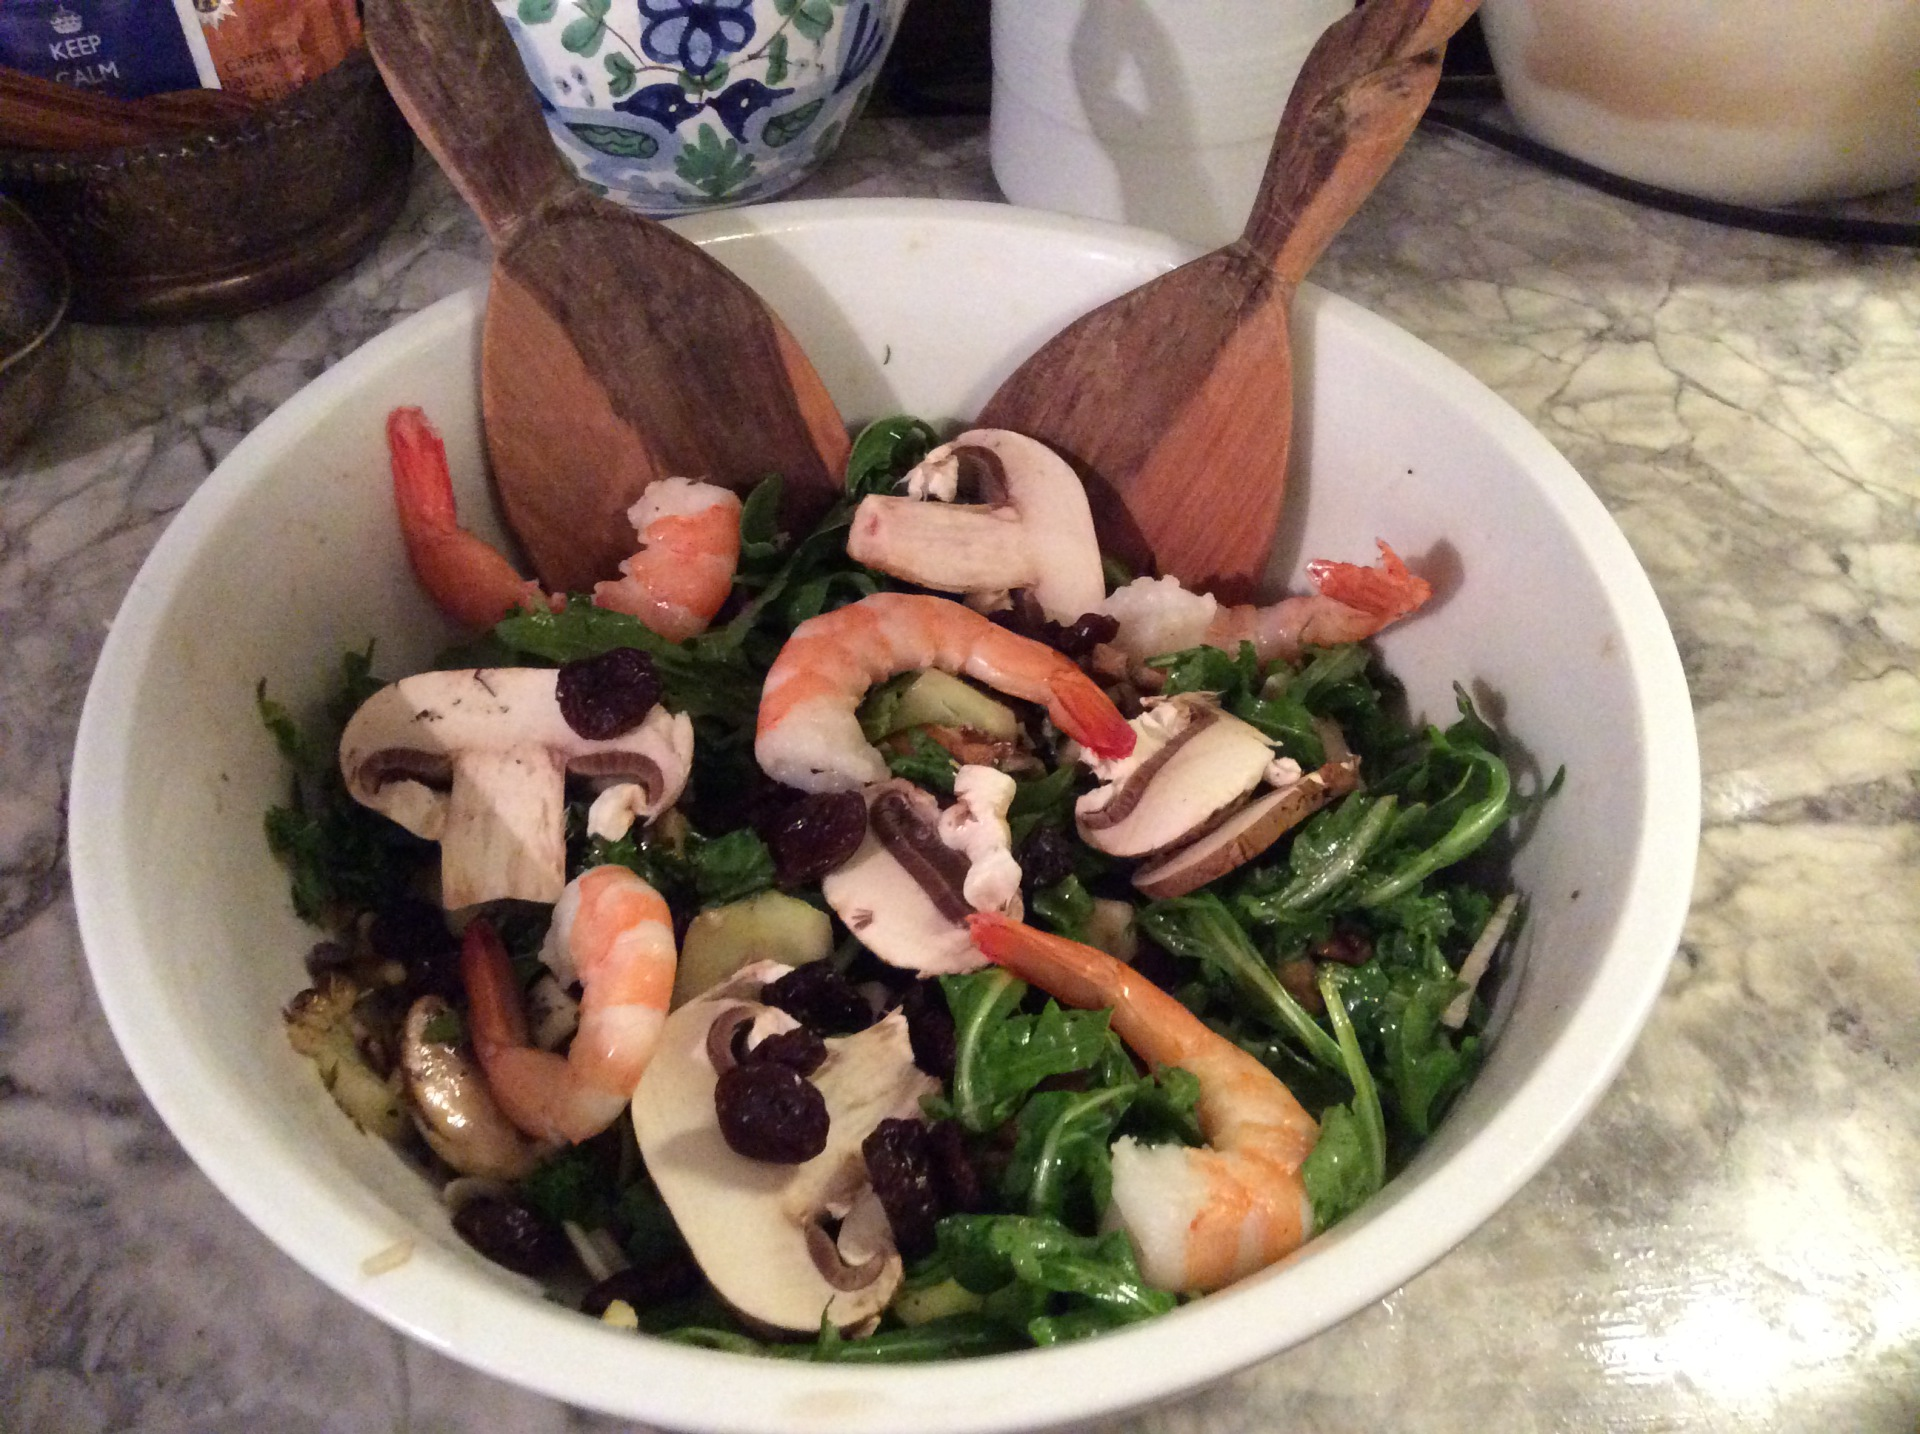 Mermaid salad